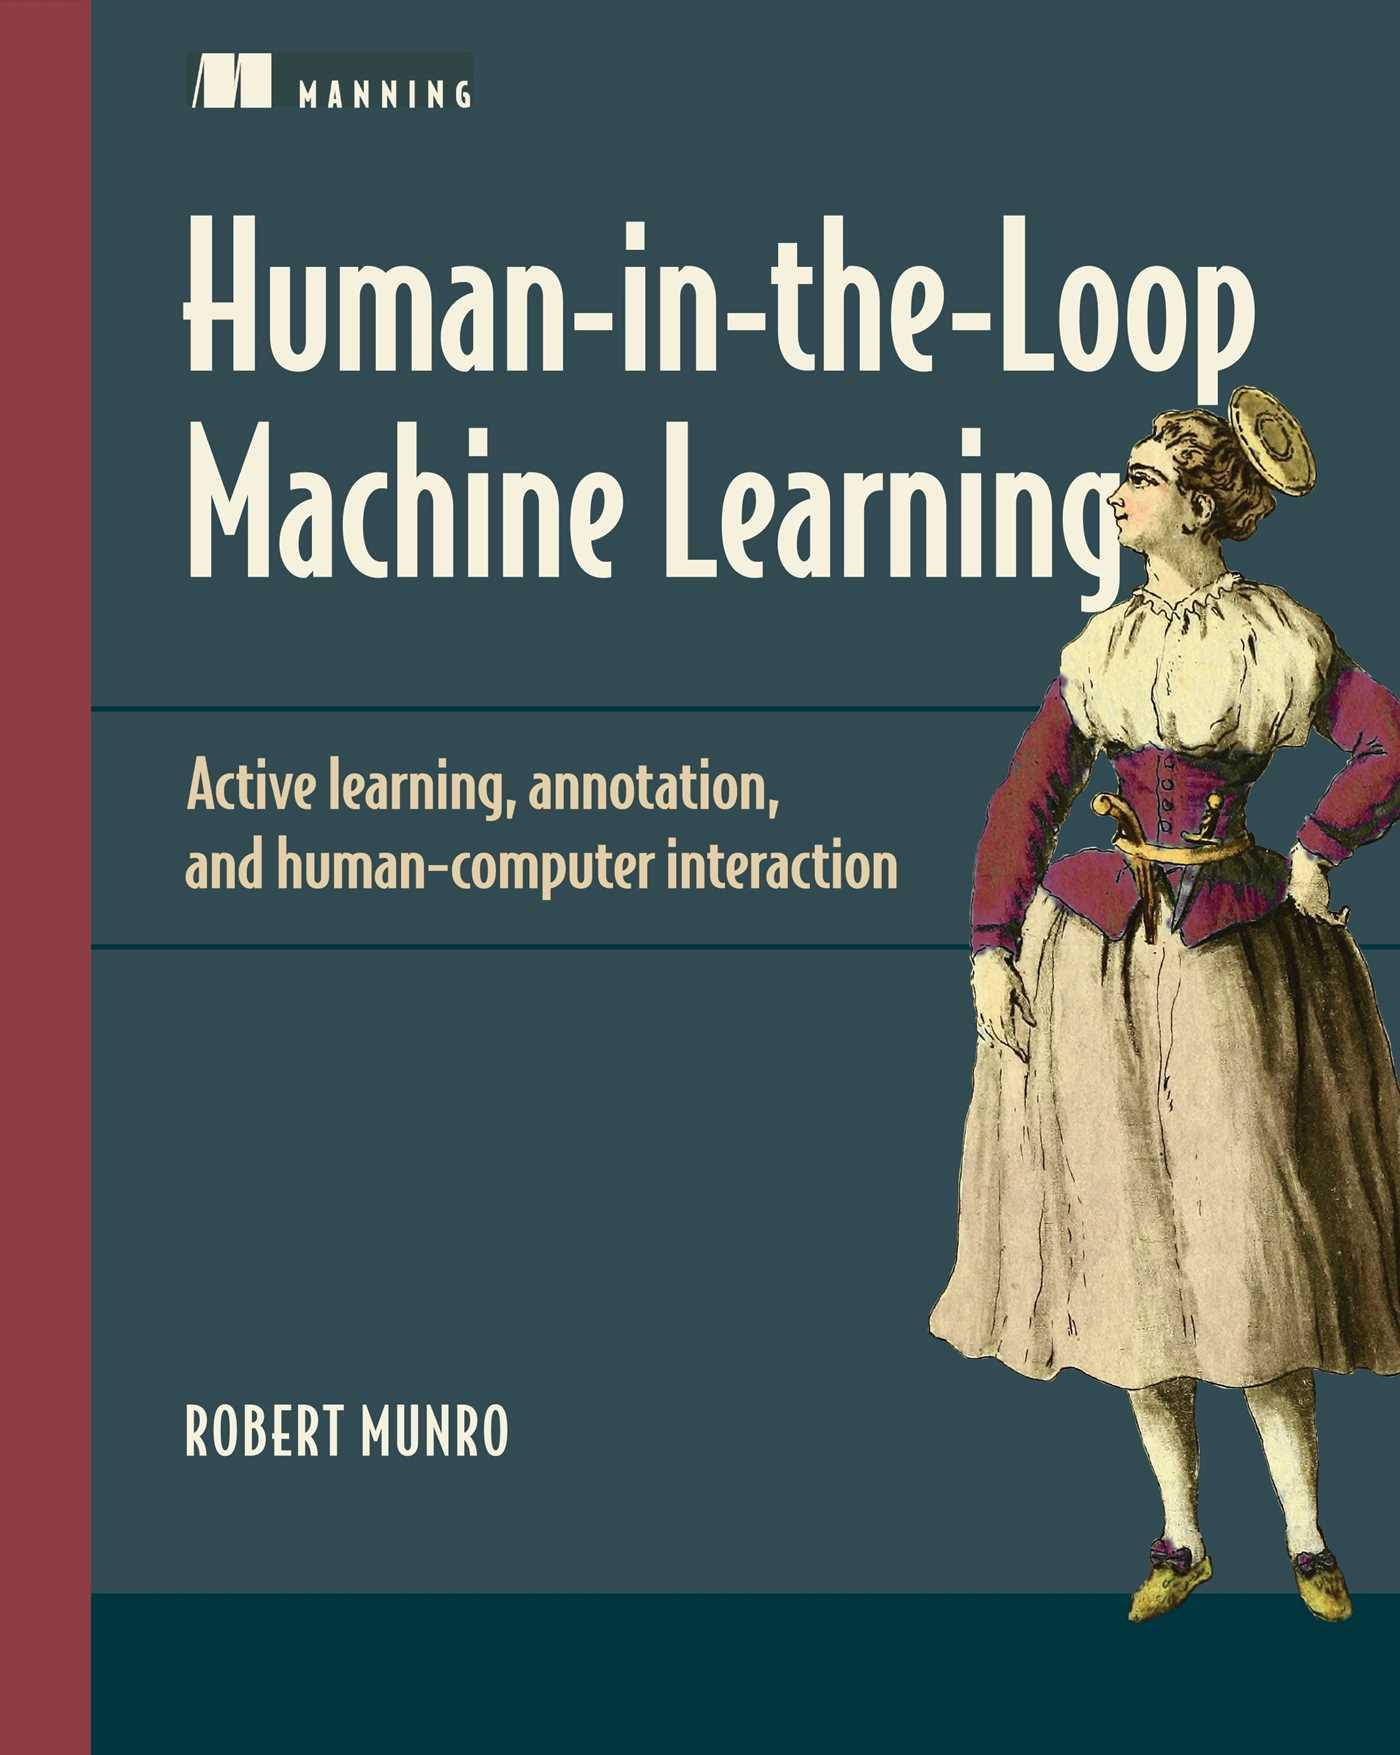 Human-in-the-Loop Machine Learning: Active learning, annotation, and human-computer interaction